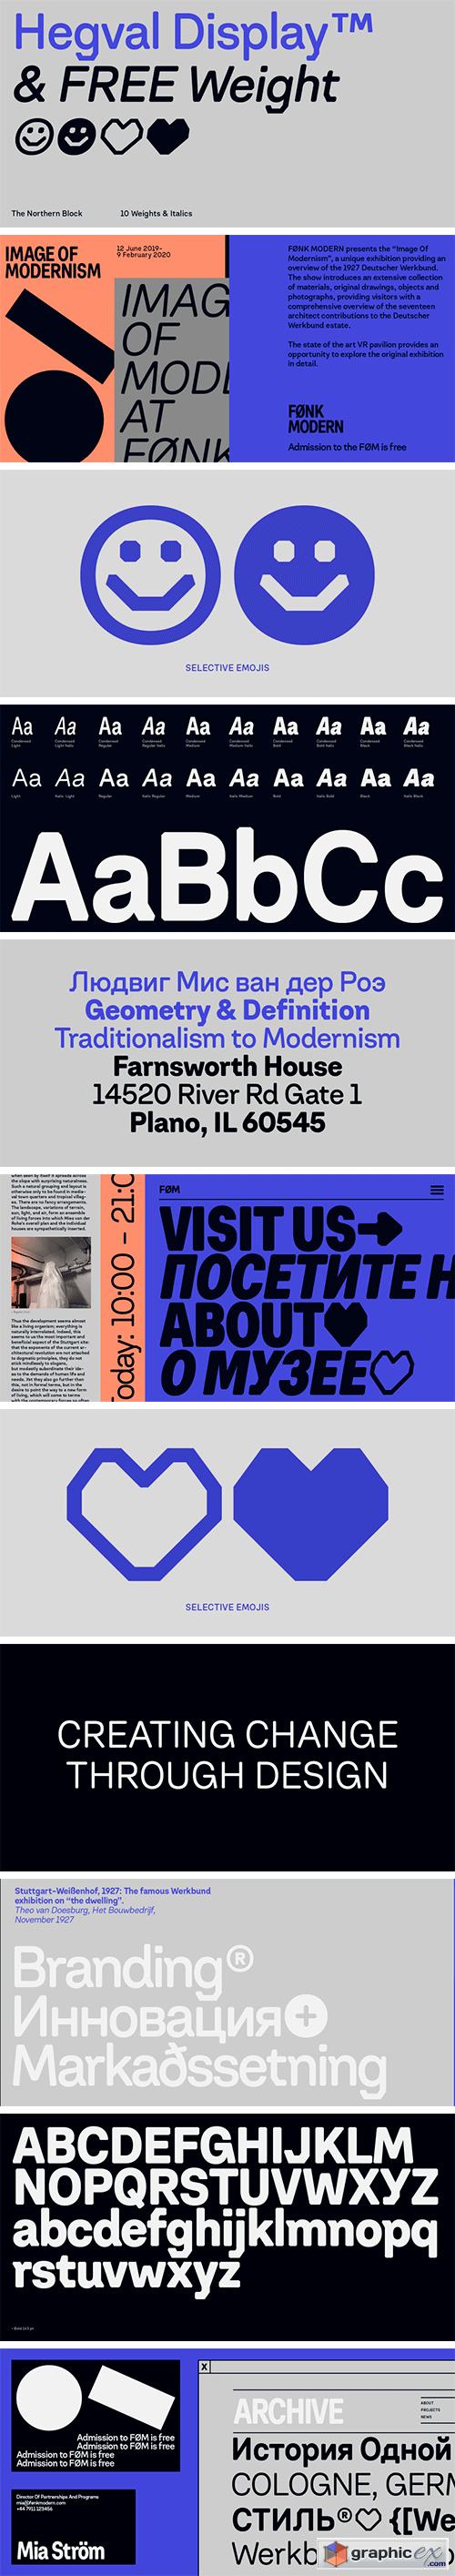 Hegval Display Font Family